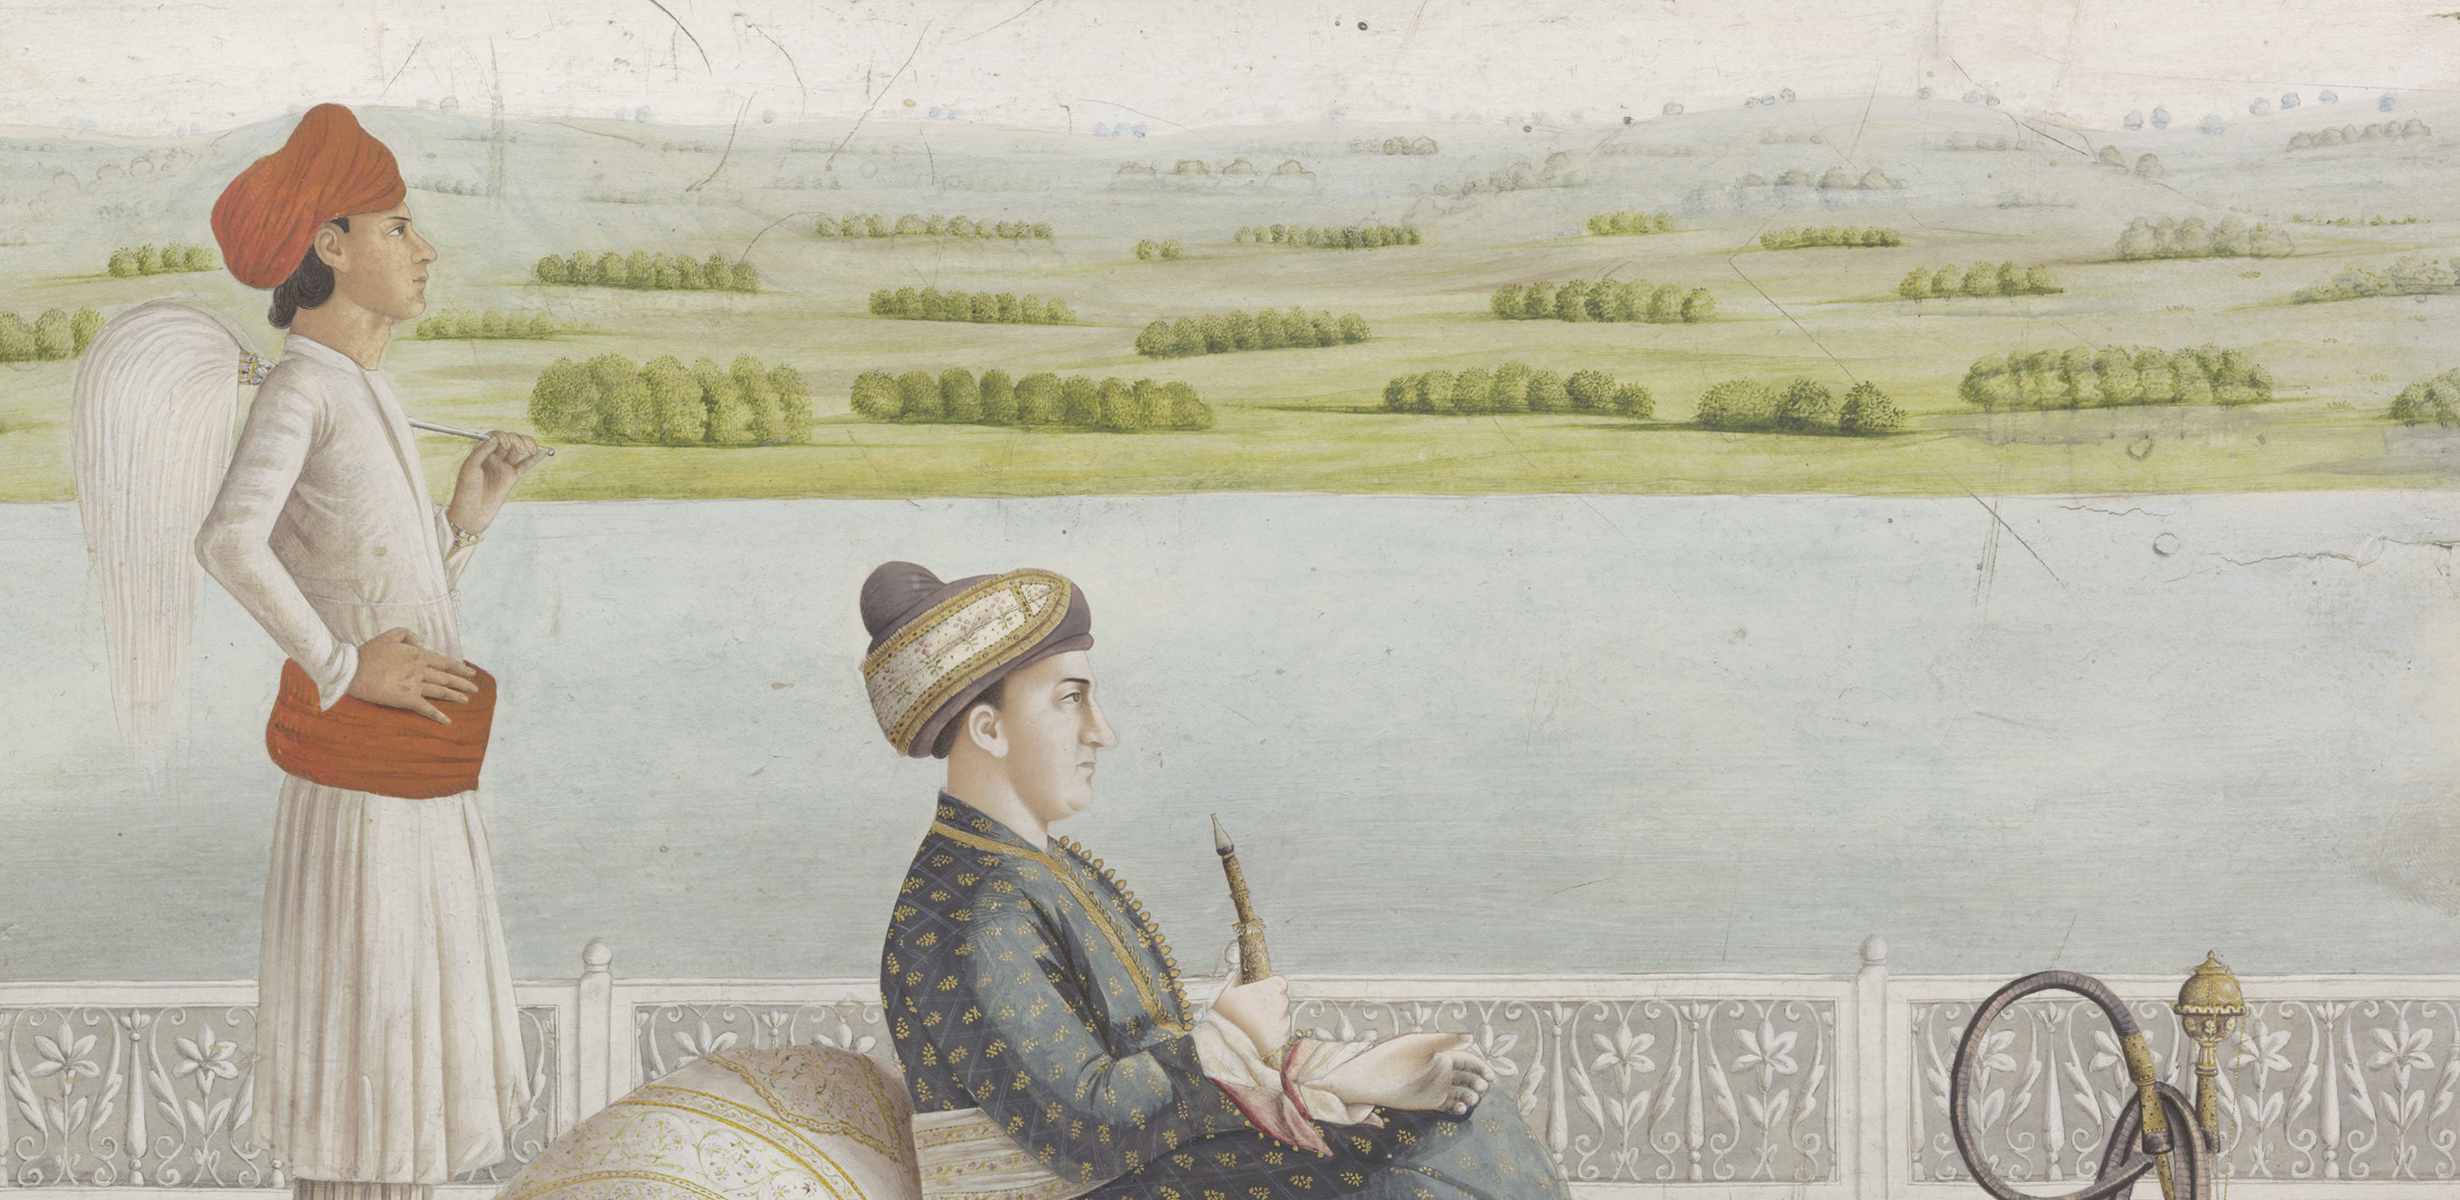 William Dalrymple on the Forgotten Painters of the East India Company